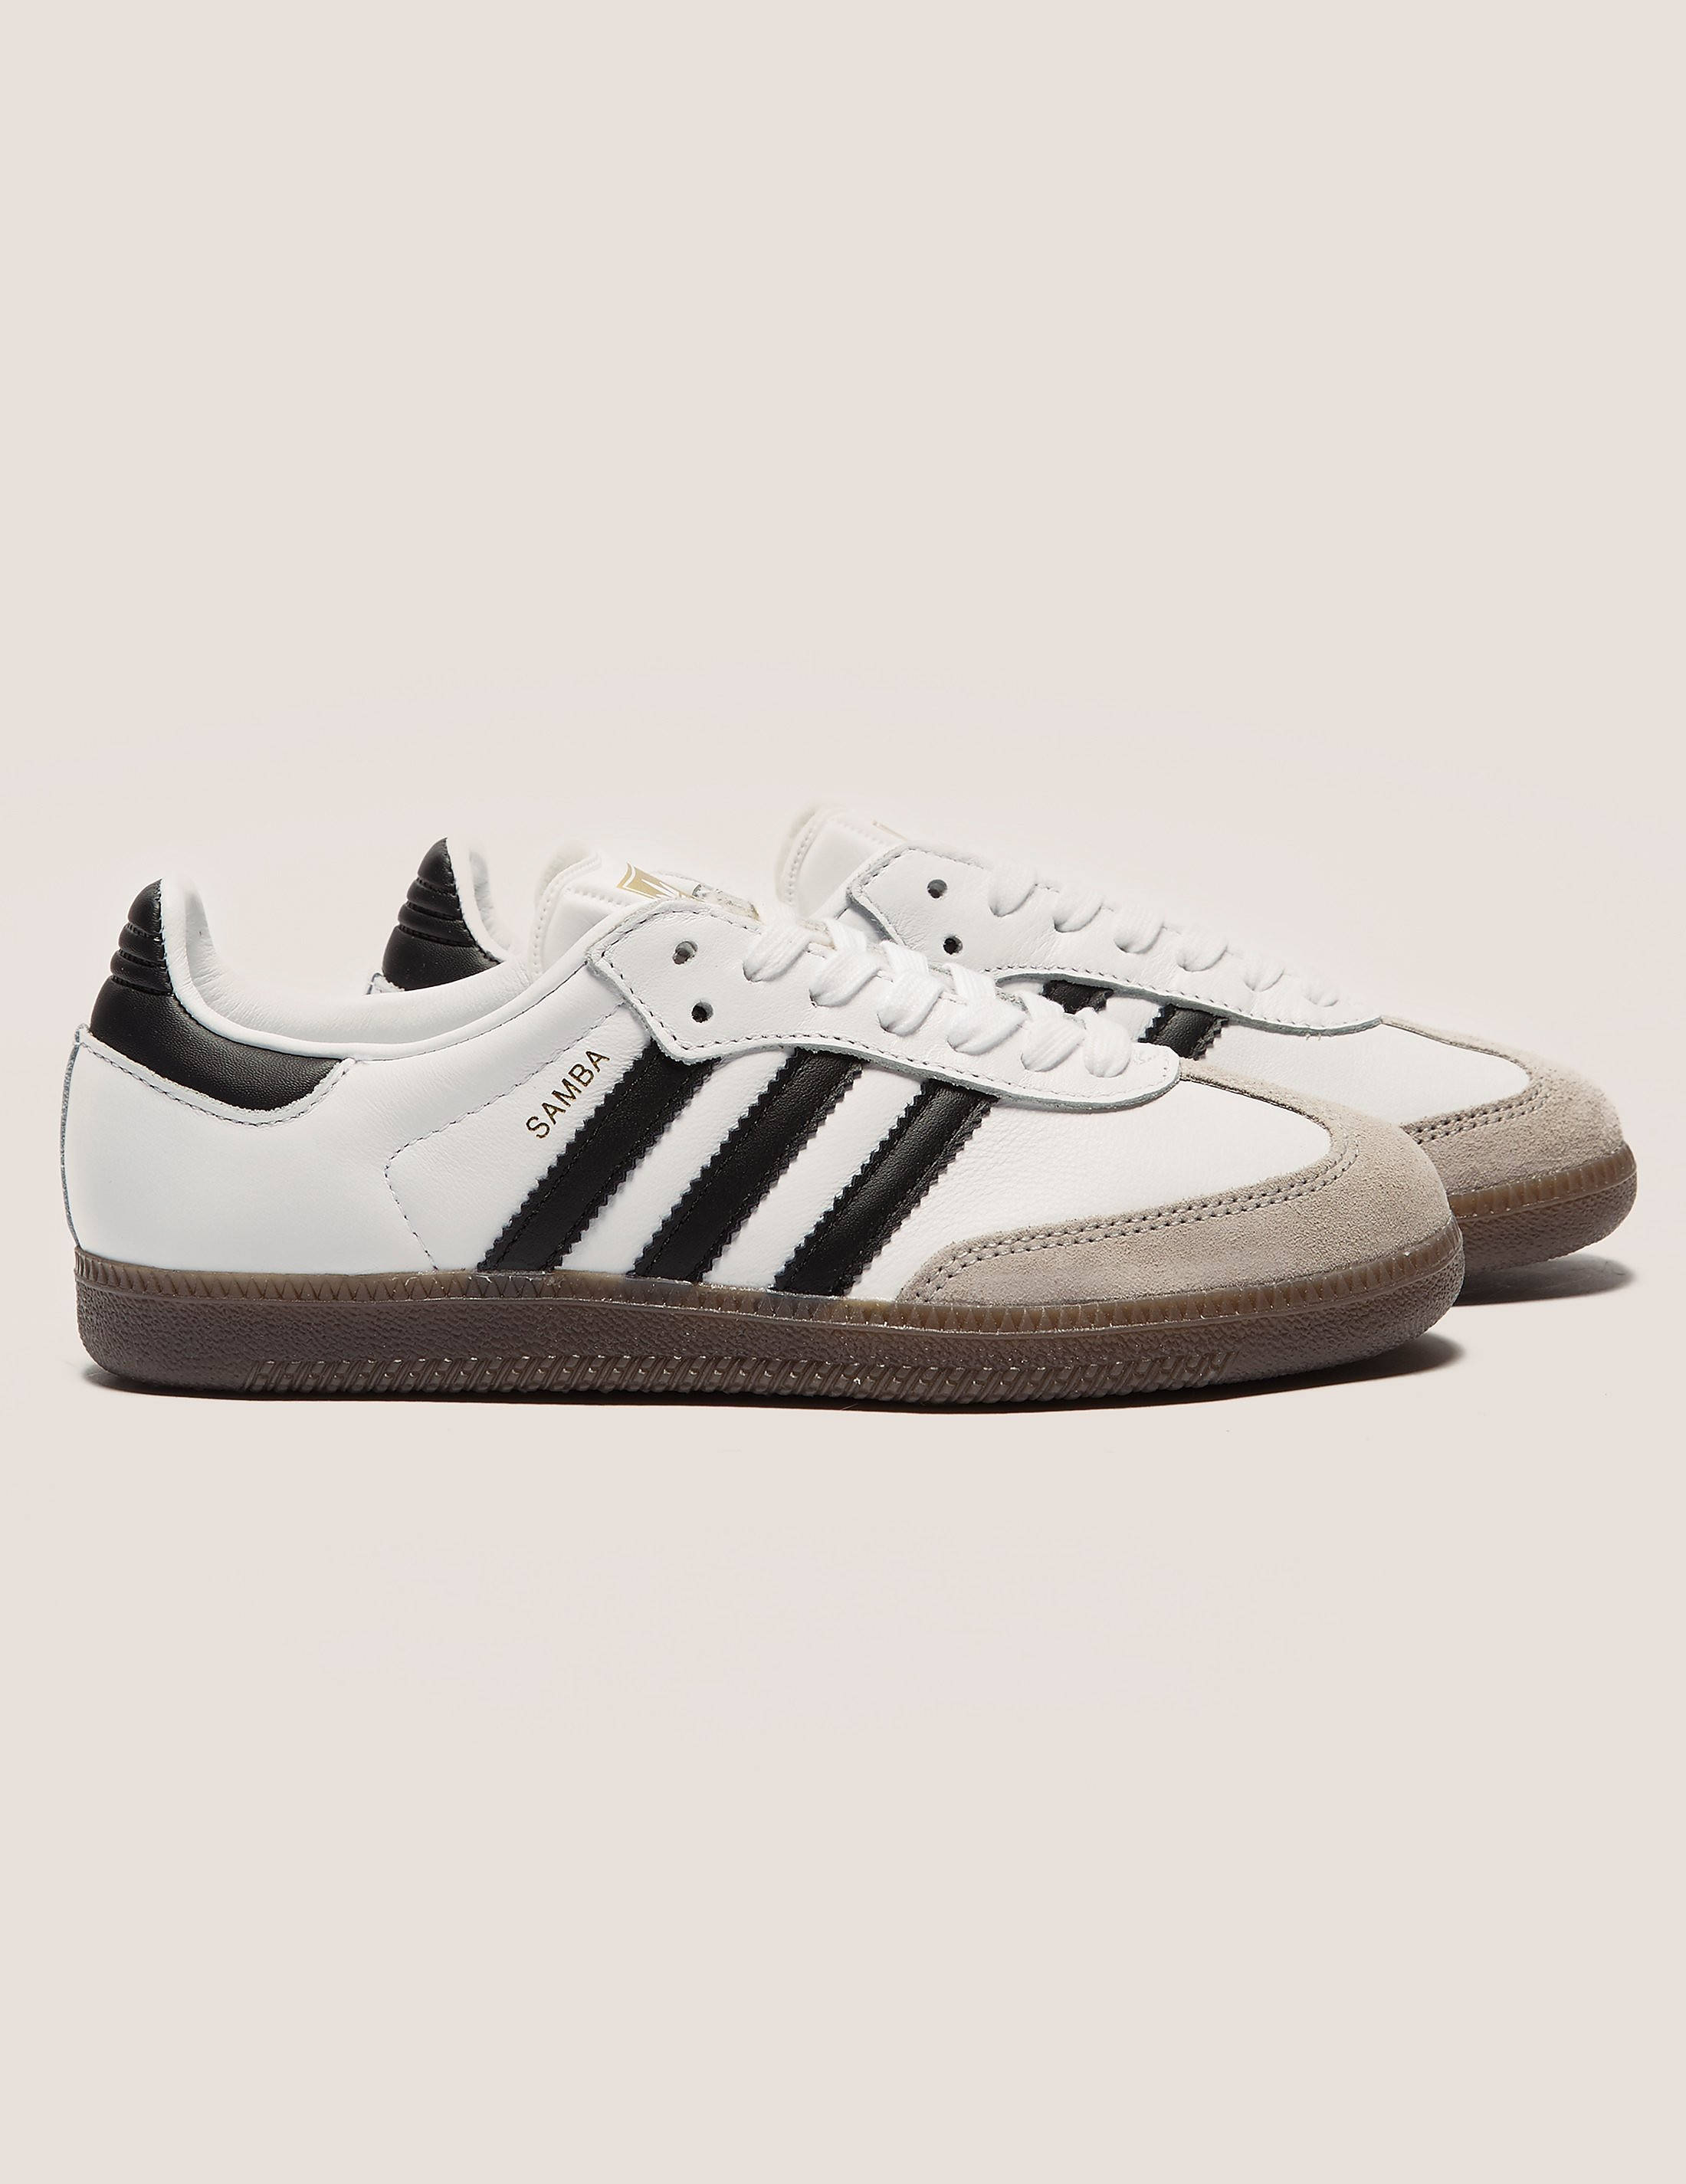 adidas Originals Samba OG Womens